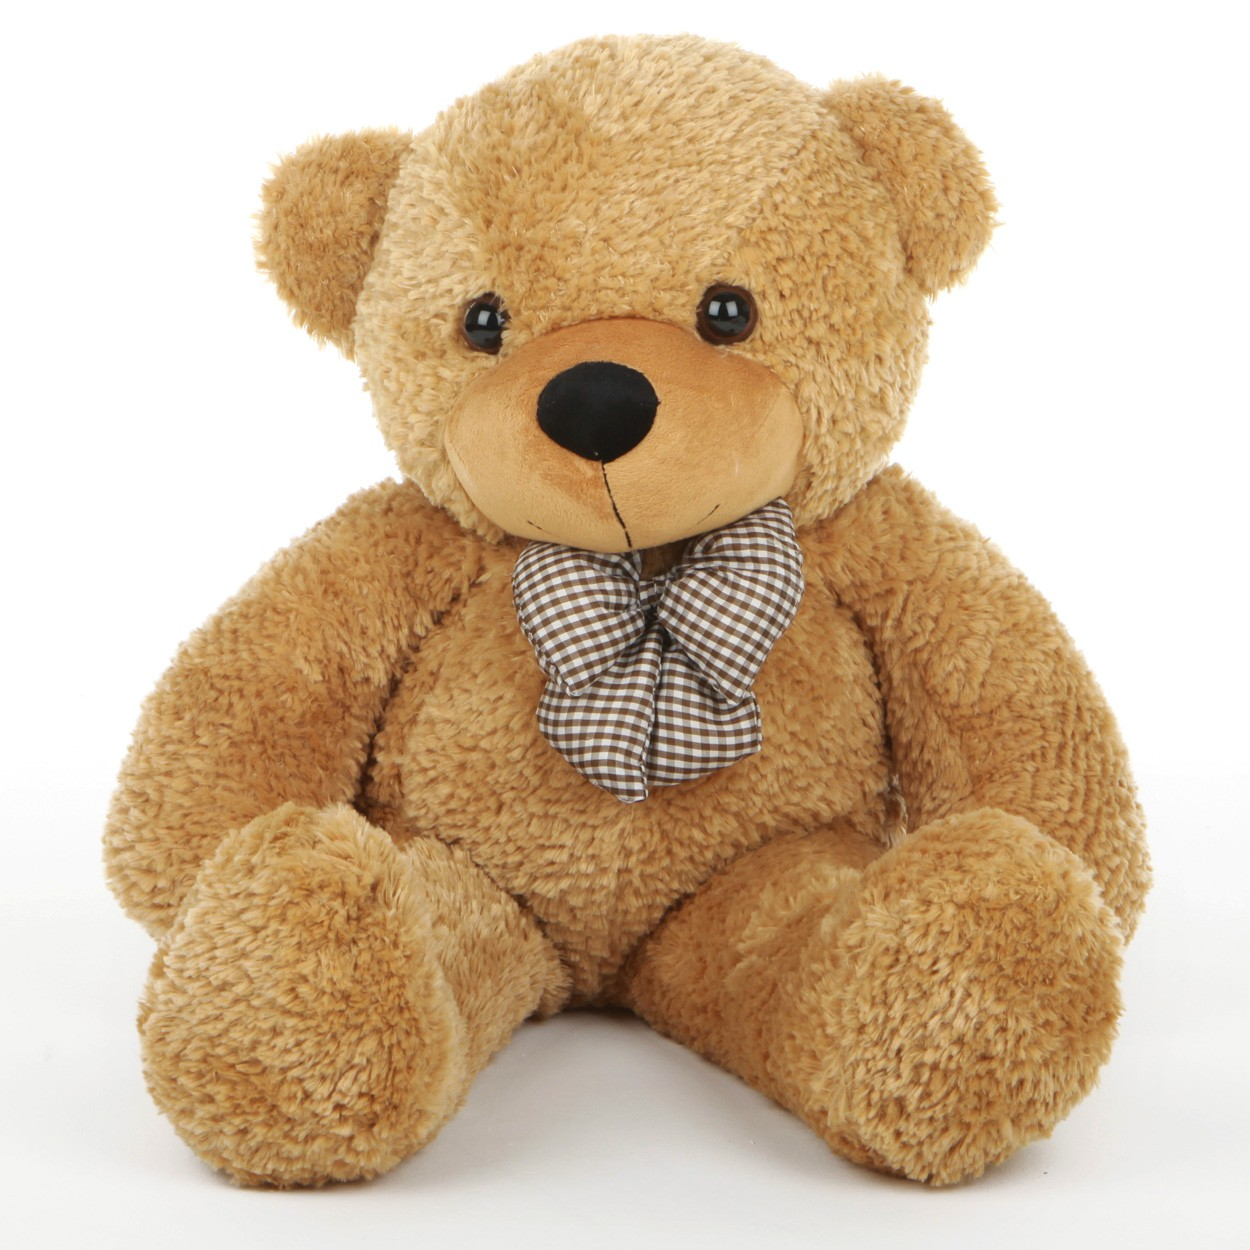 High Resolution Wallpaper | Teddy 1250x1250 px